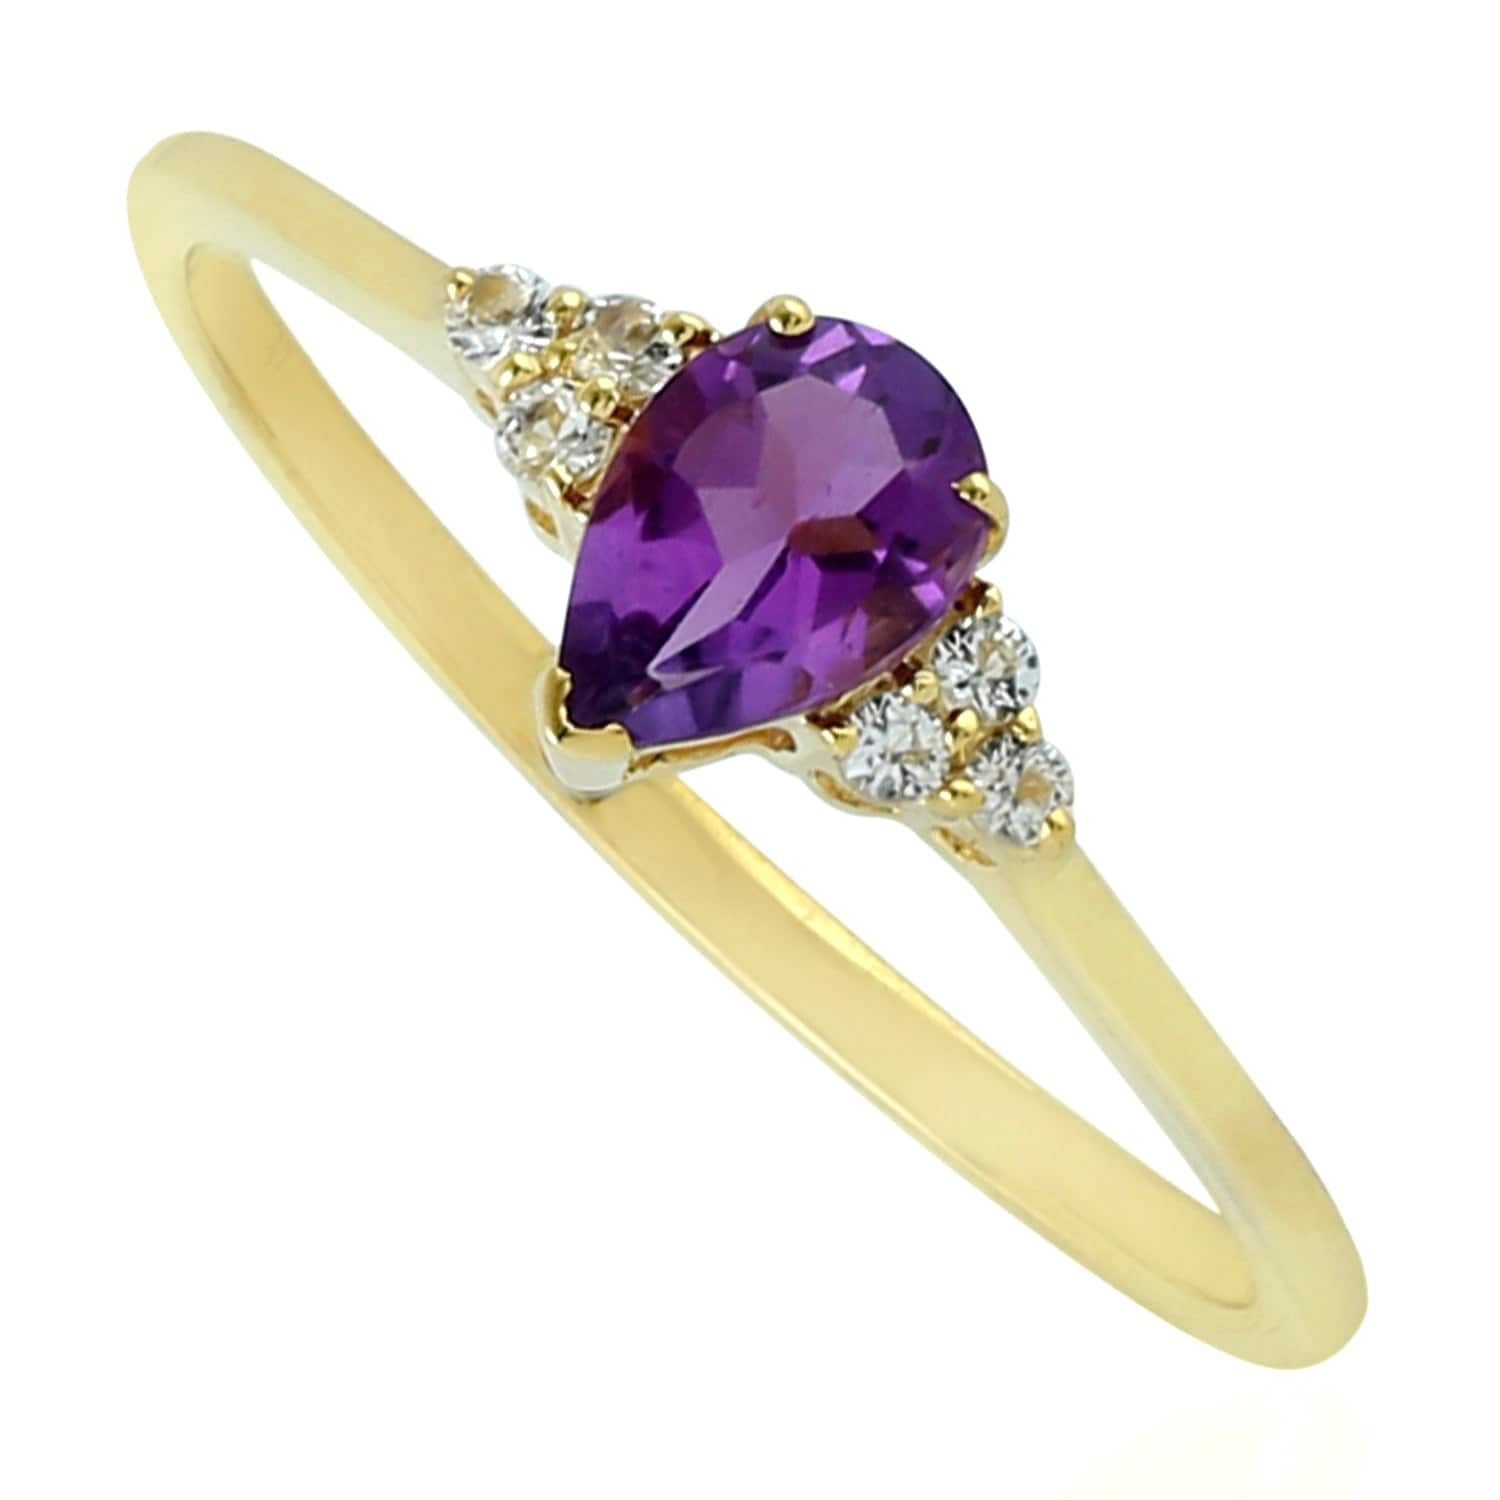 10kt Yellow Gold with Amethyst Stone